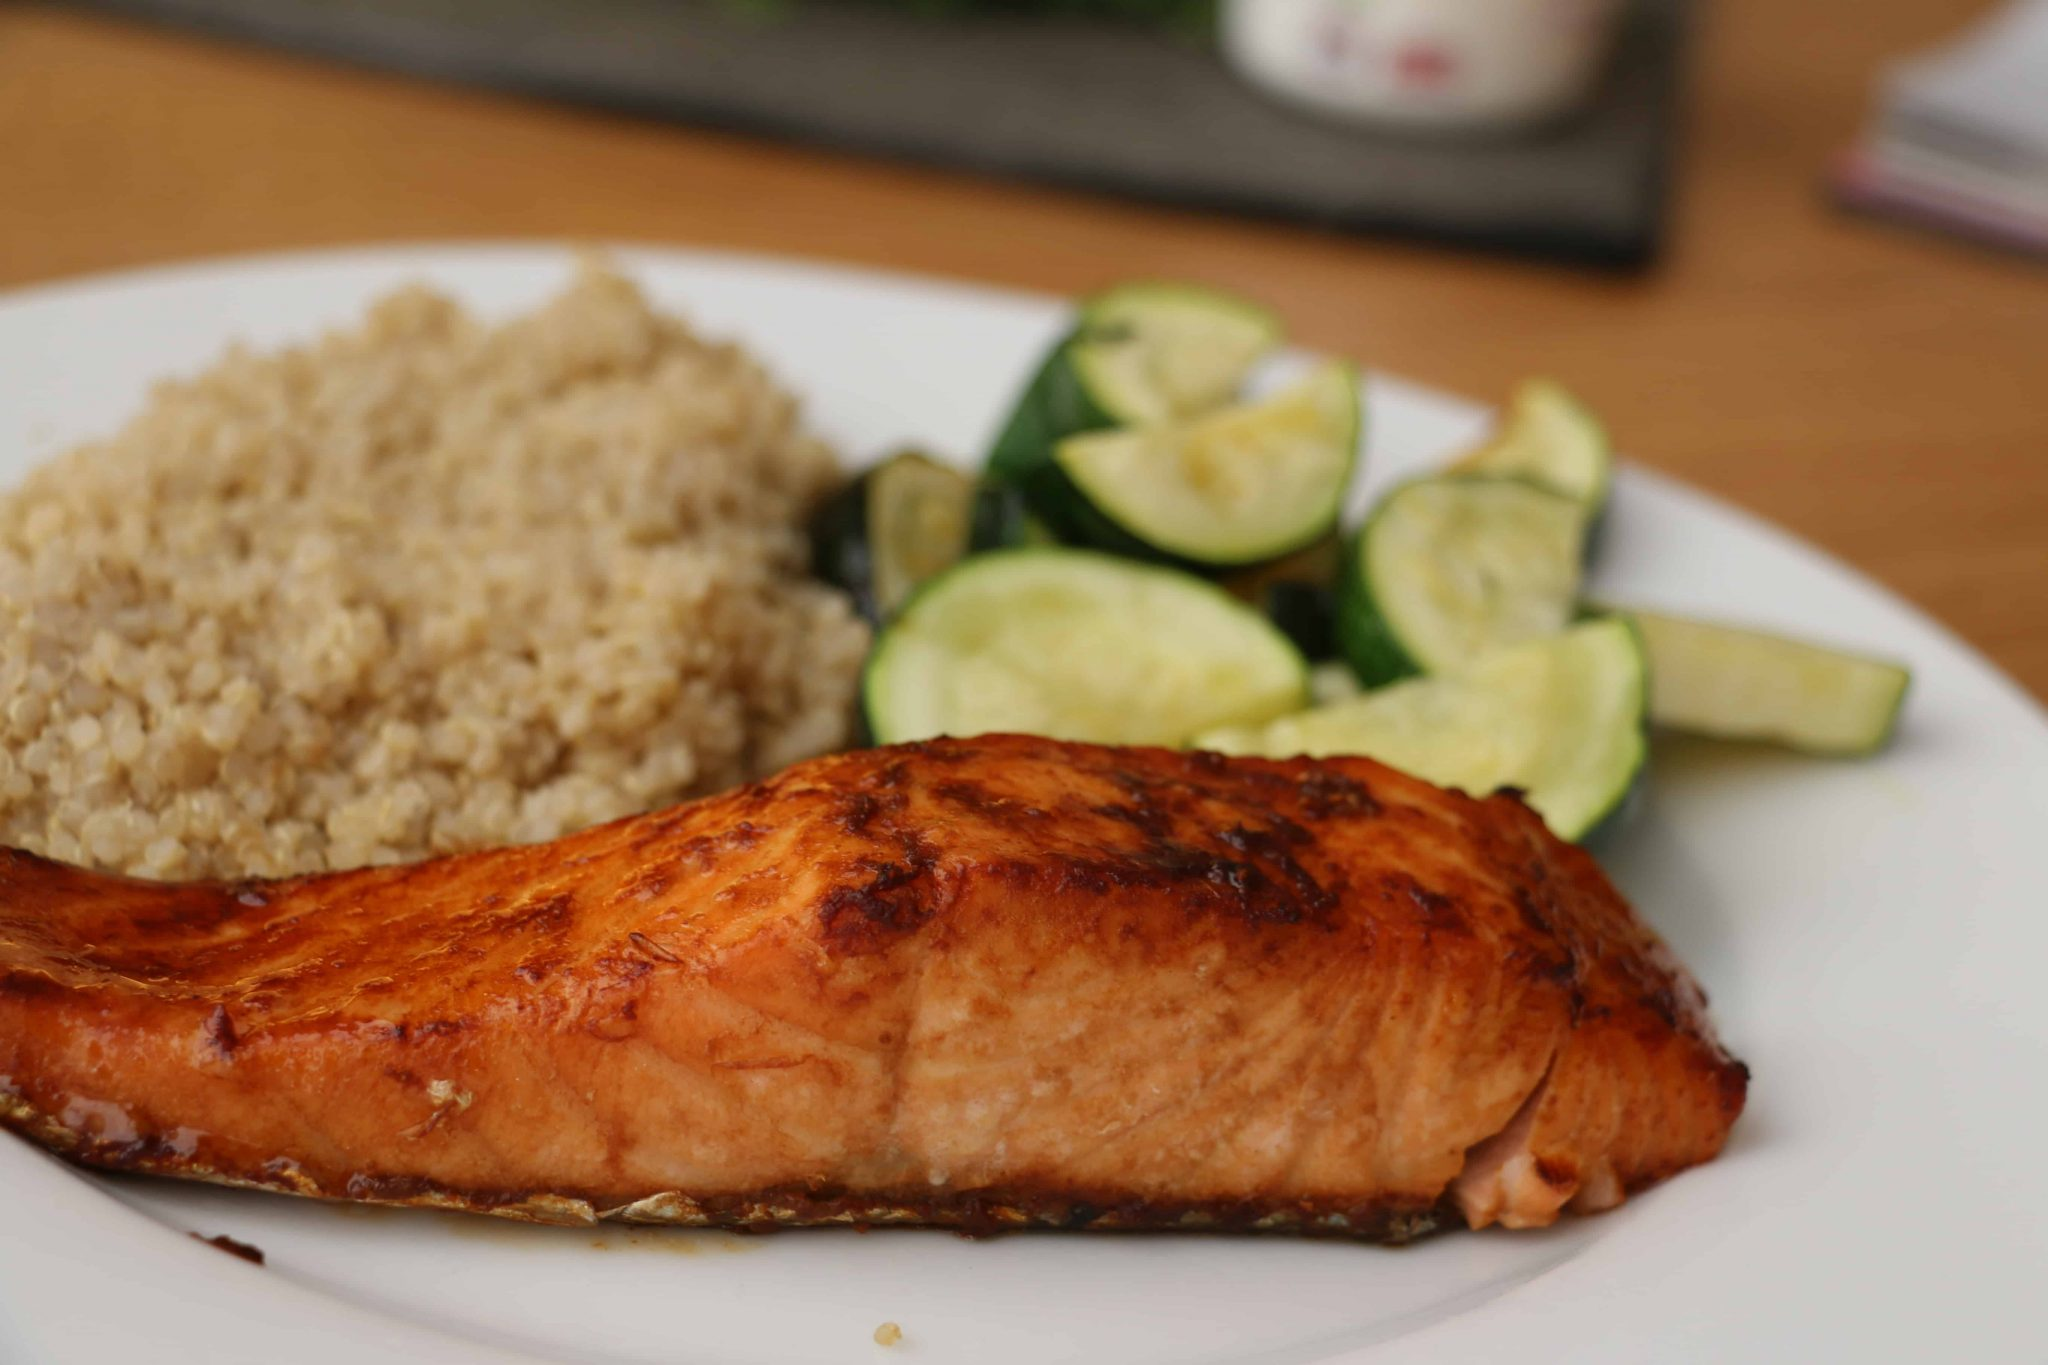 Ginger soy sauce salmon recipe